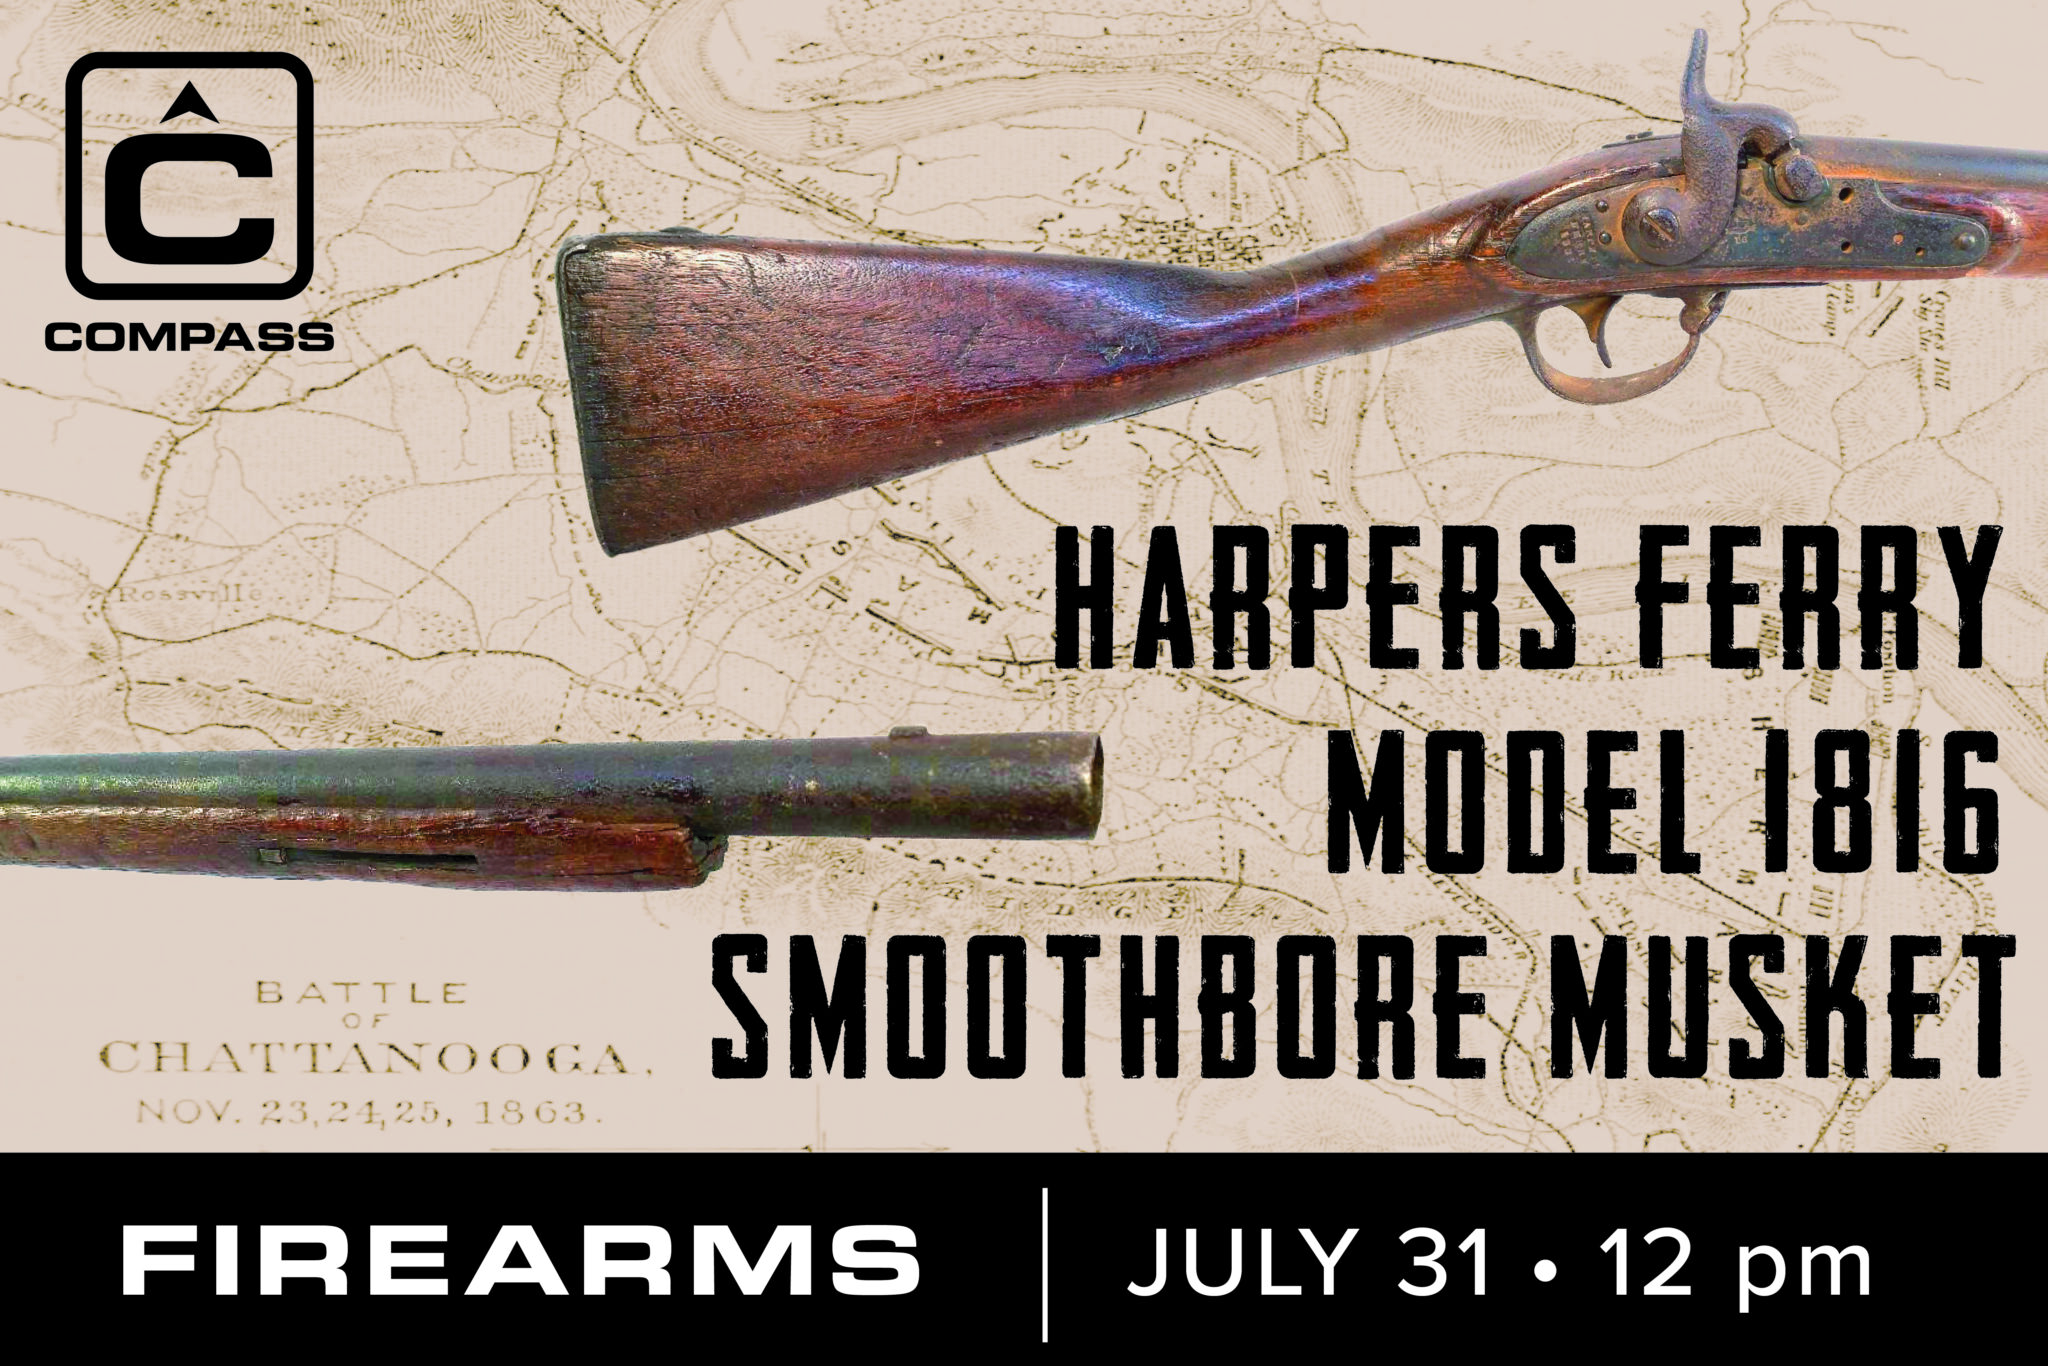 Harpers Ferry Model 1816 at auction